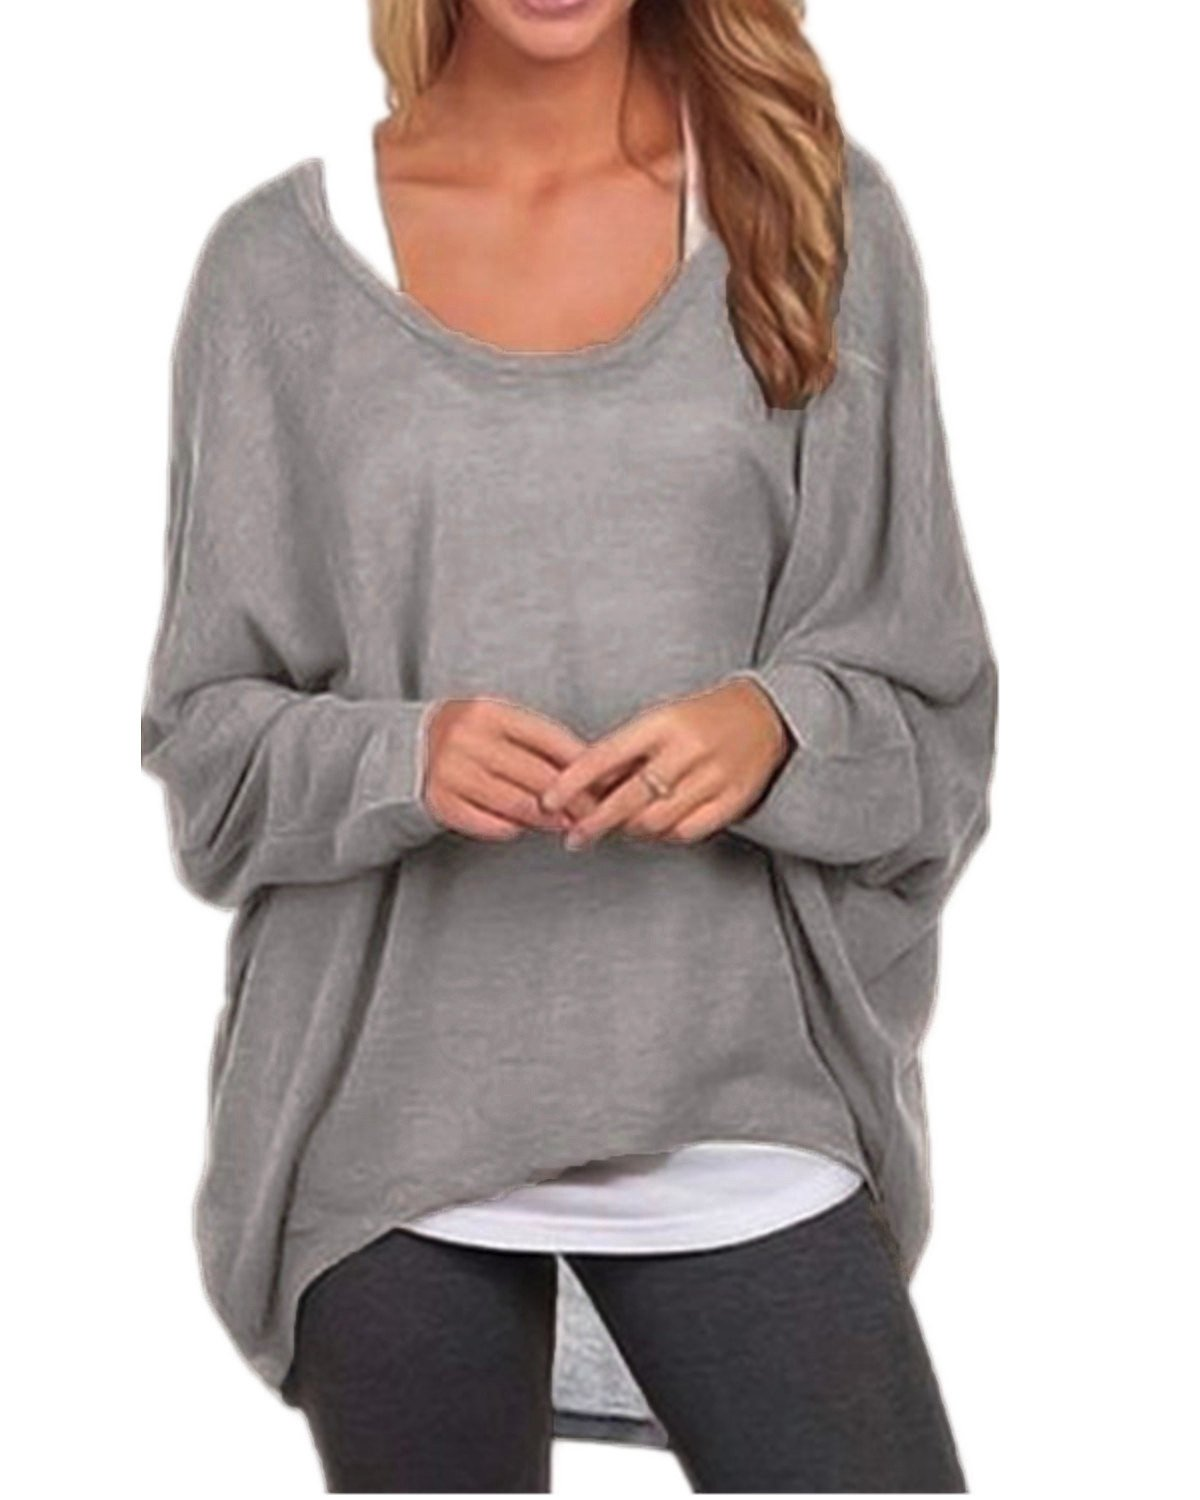 ZANZEA Women's Long Batwing Sleeve Loose Oversize Pullover Sweater Top Blouse Gray US 8/Tag Size M